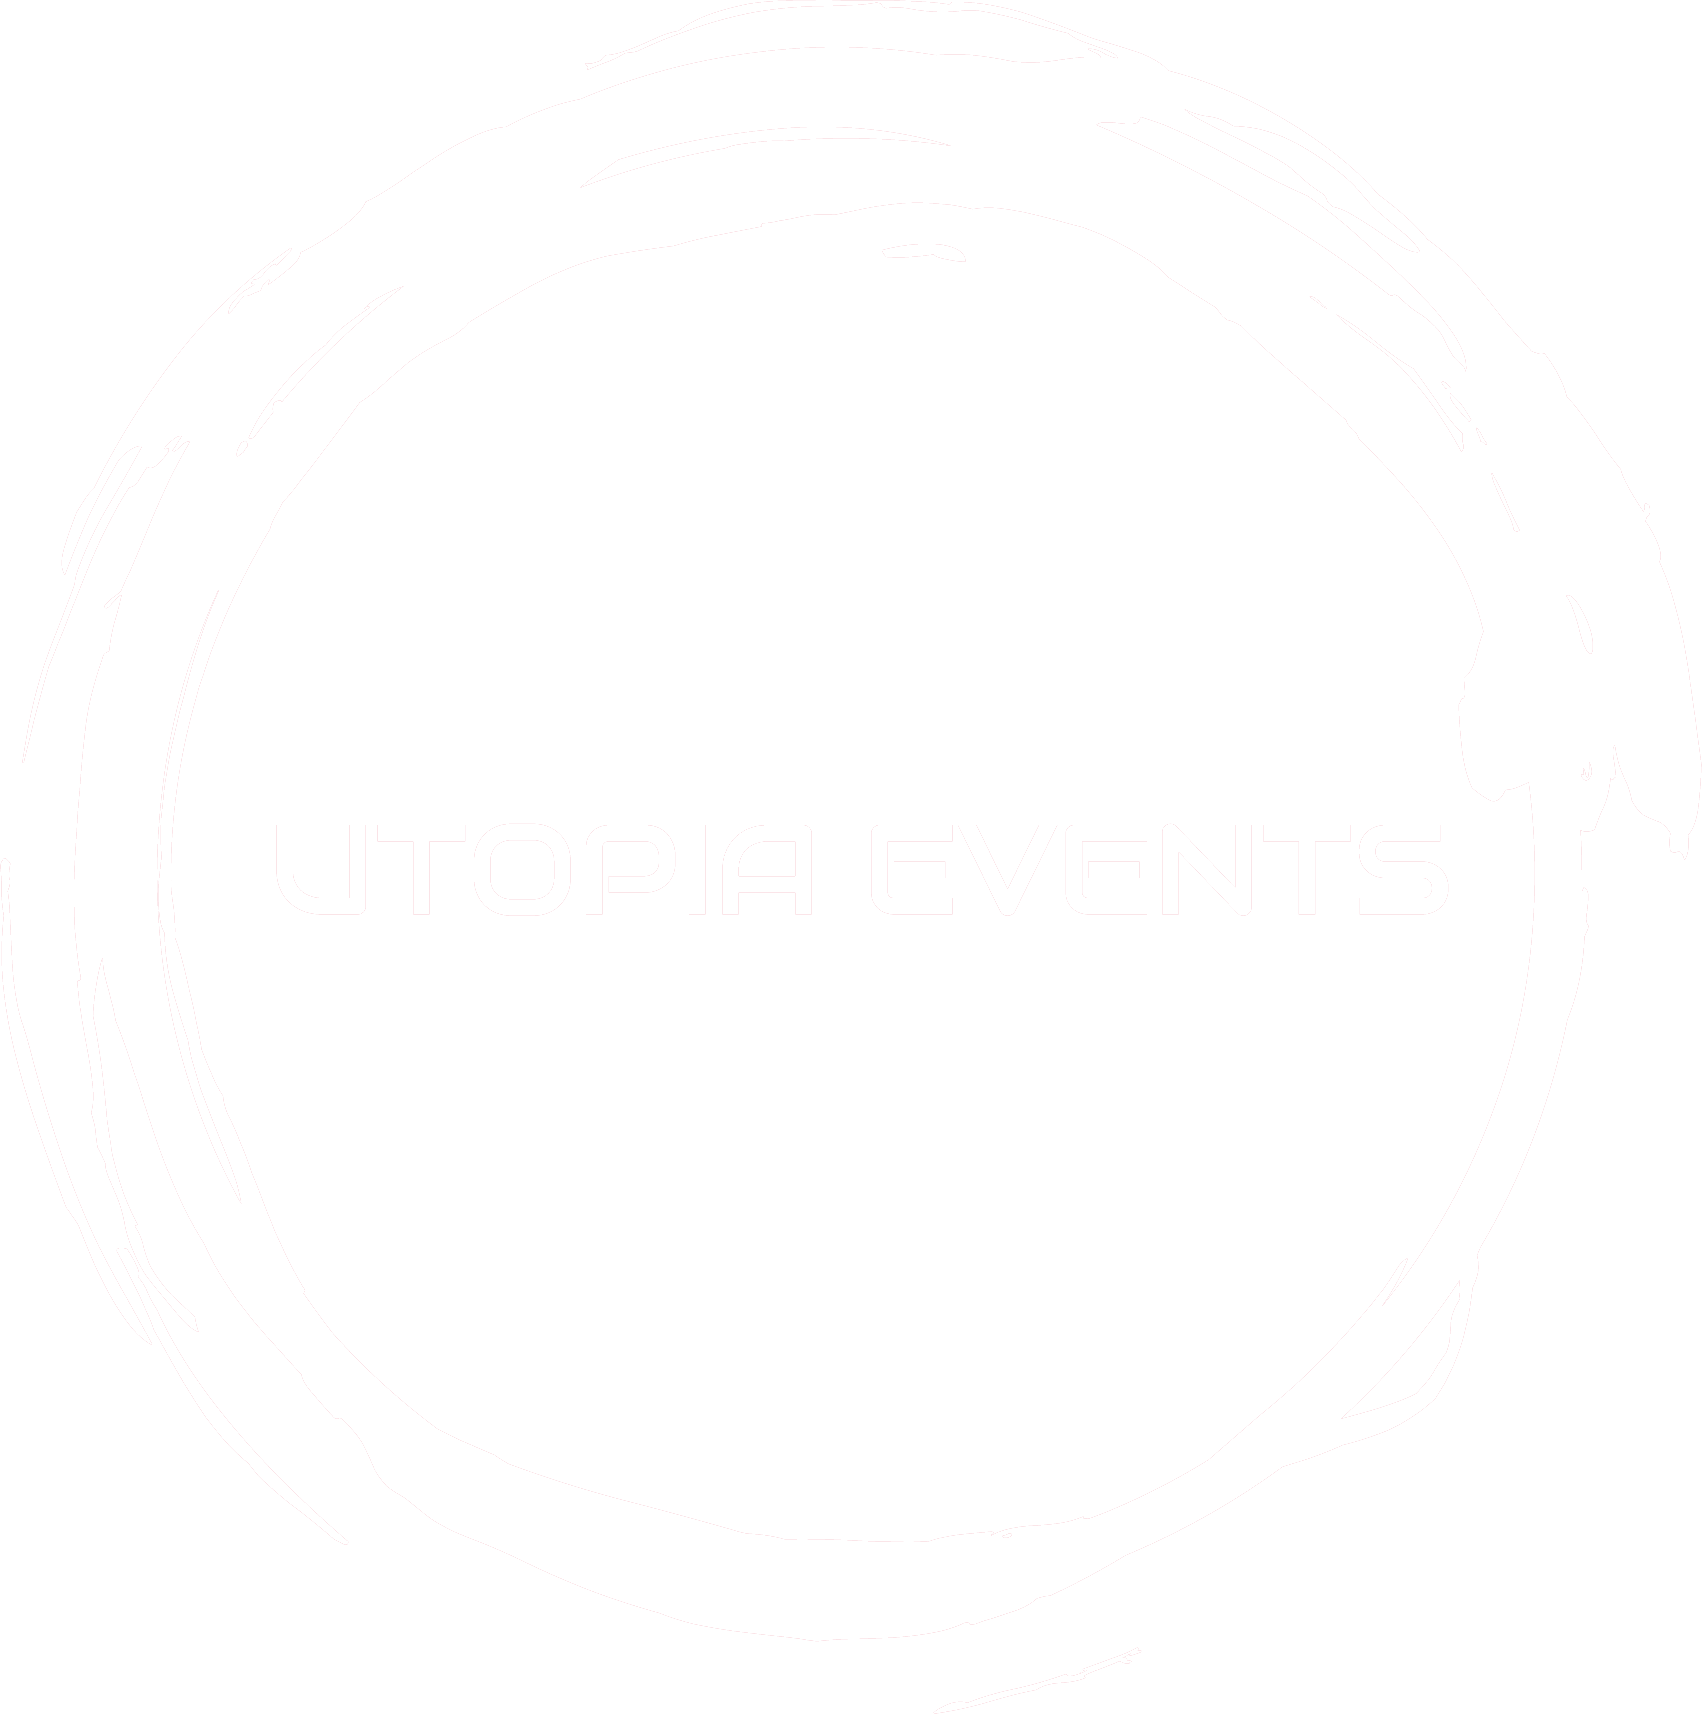 Utopia Events